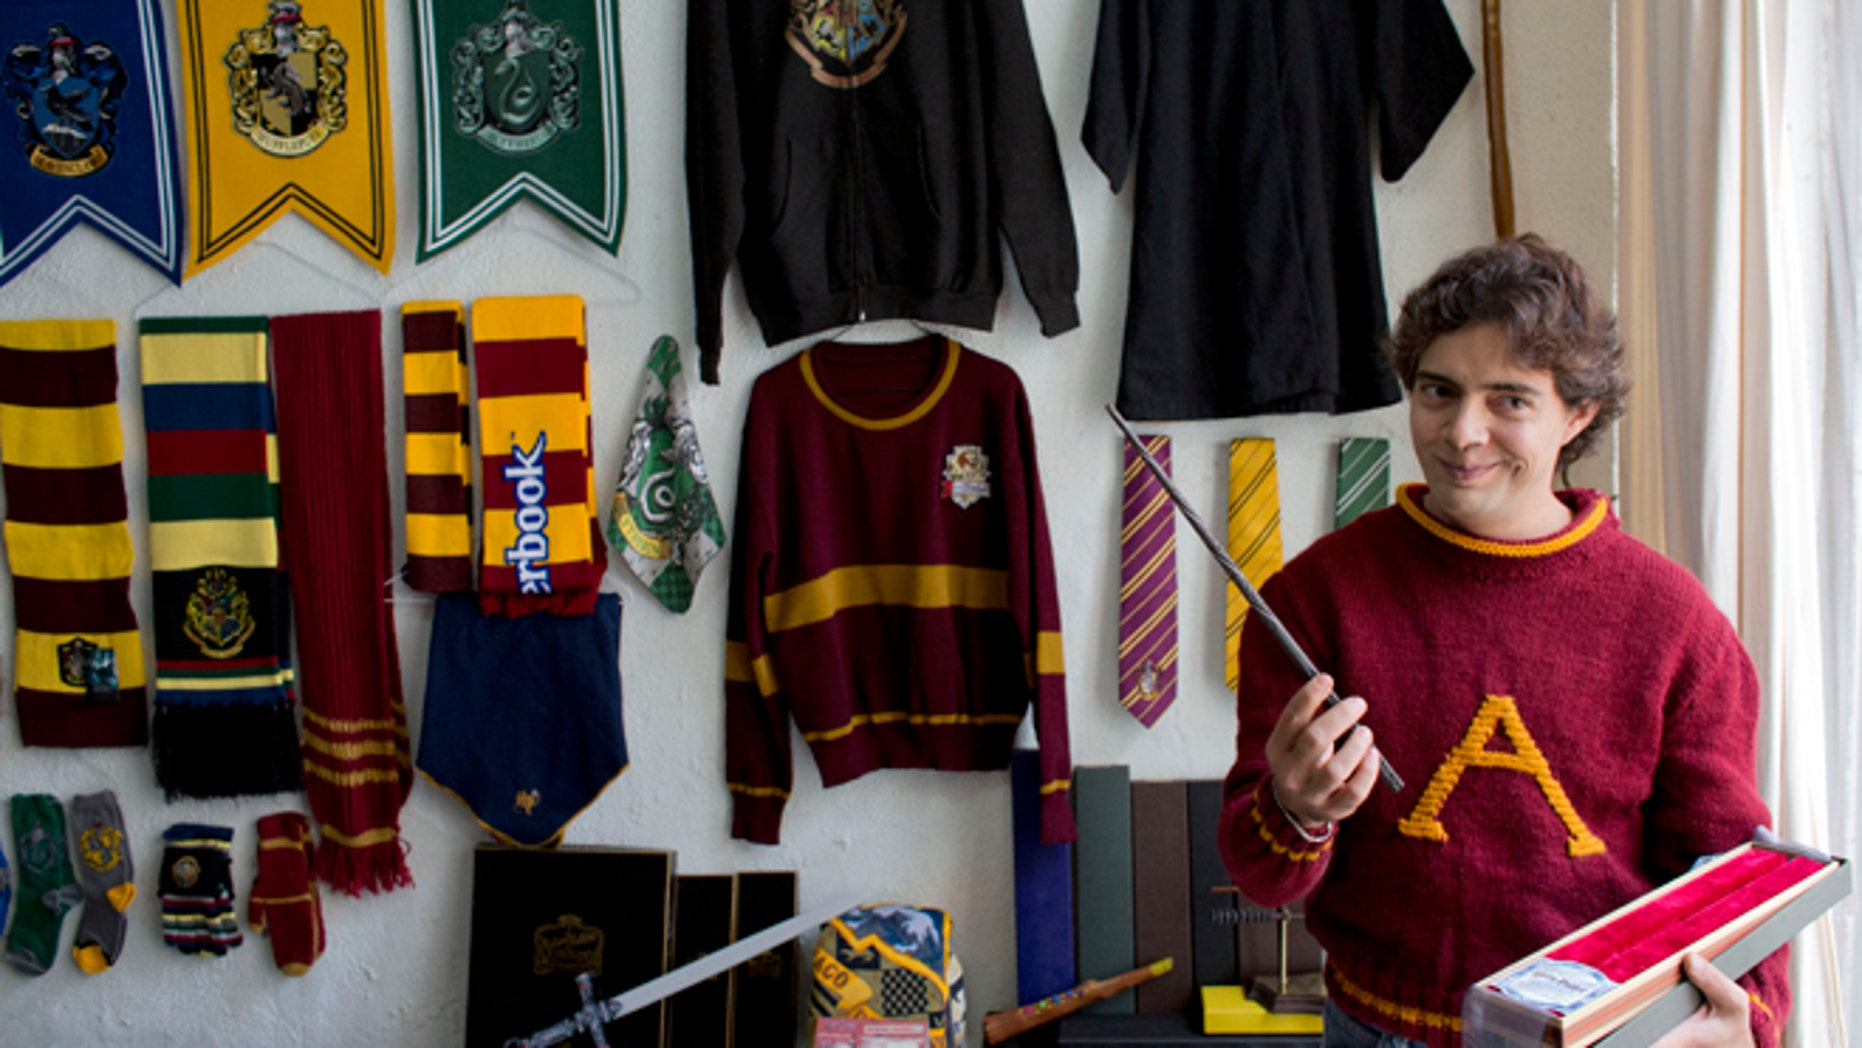 Menahem Asher Silva Vargas a 37 year old lawyer, displays a favorite wand, as he shows off his collection of Harry Potter memorabilia after being awarded the Guinness World Record title for the largest collection, in Mexico City, Monday, Sept. 29, 2014. Silva's collection consists of more than 3000 individual items, including figurines, trading cards, wands, clothing, and accessories.(AP Photo/Rebecca Blackwell)